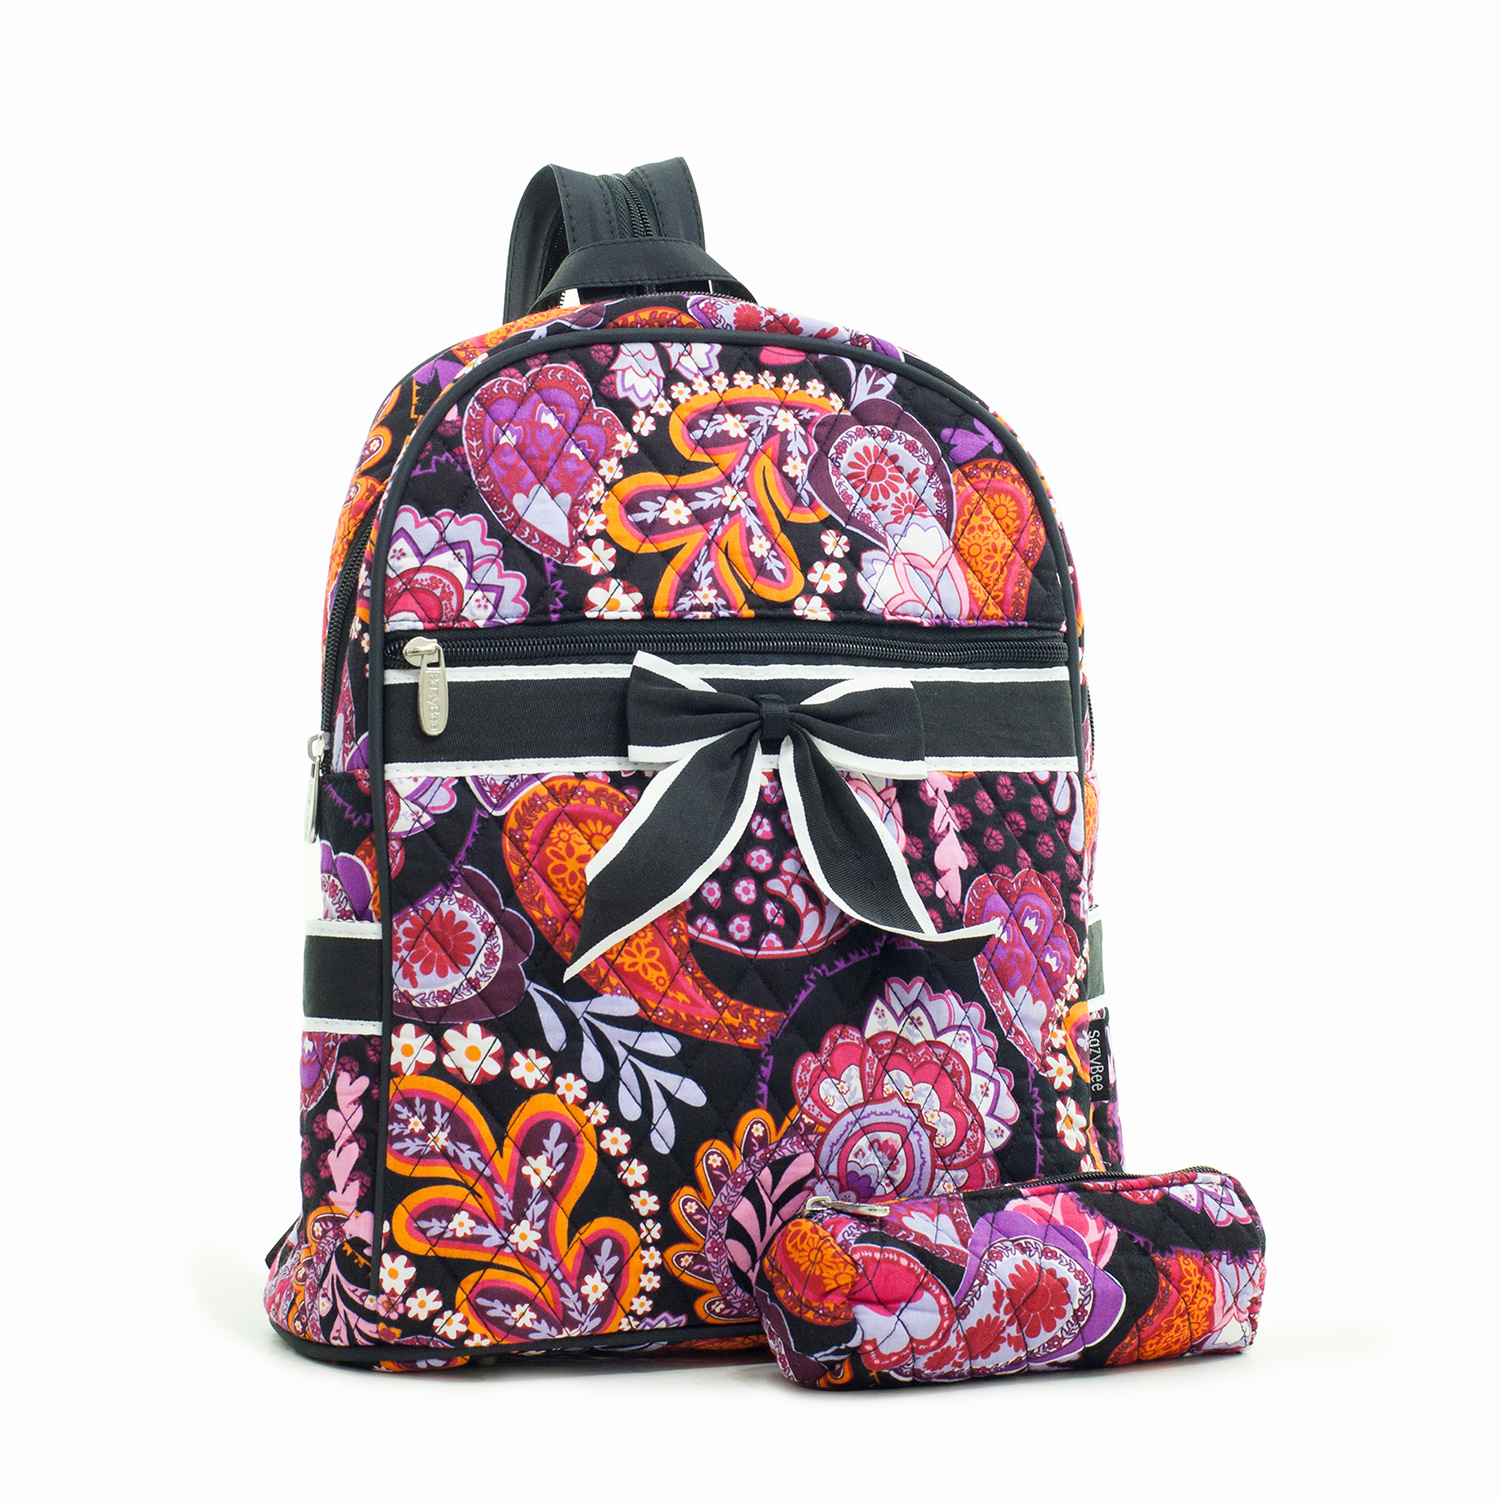 Quilted Paisley Floral Print Backpack with Convertible Straps